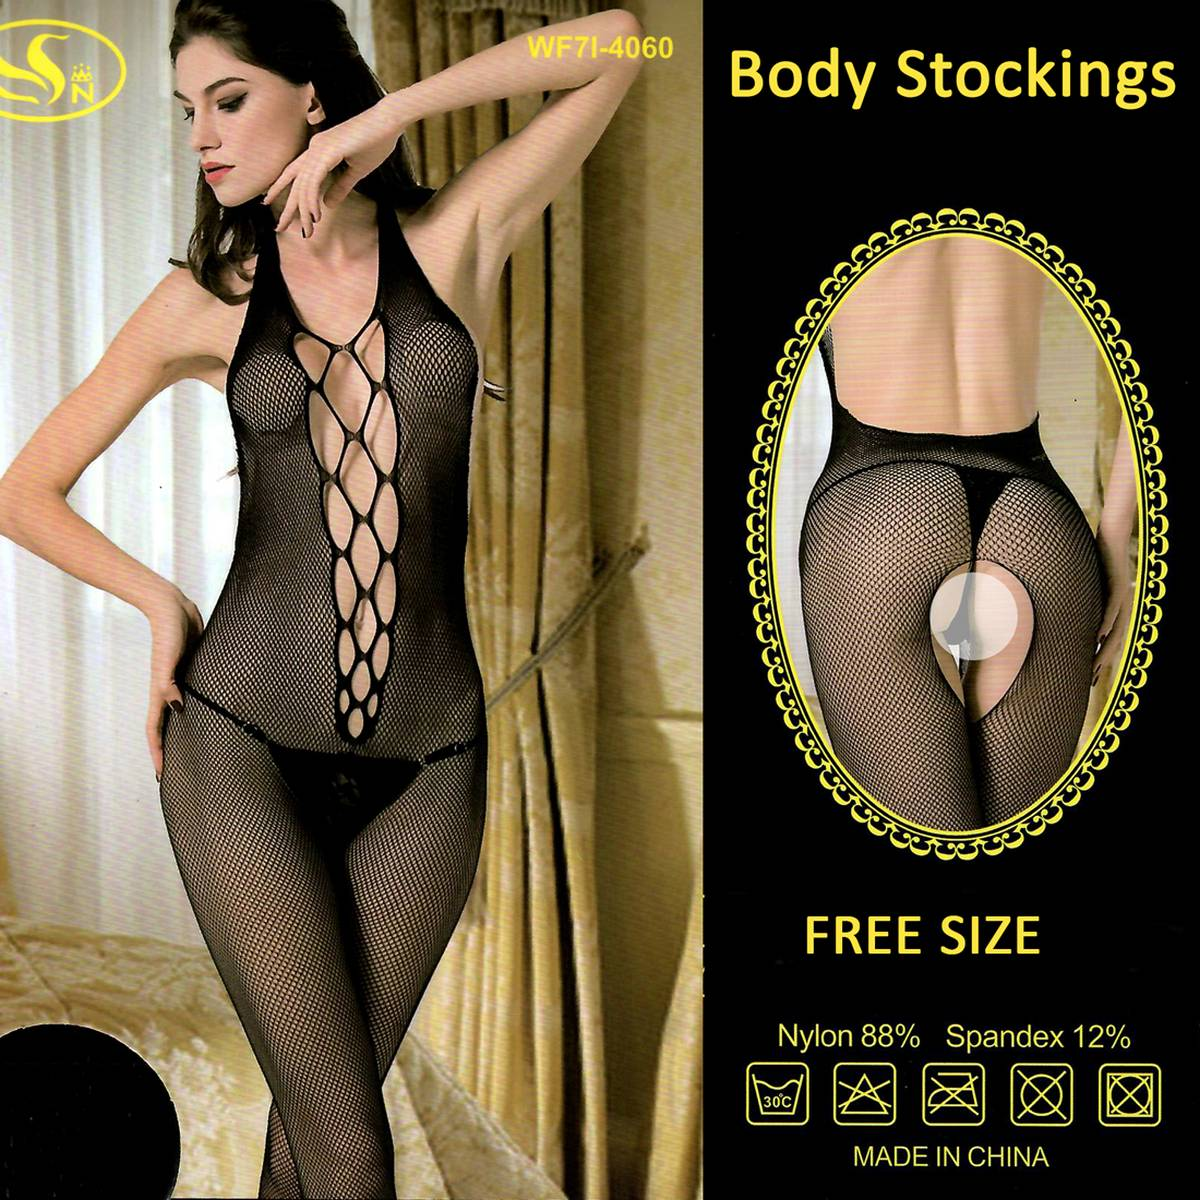 Hot Style Women Sexy Dress for Night Wear and Parties Full Black Body Stocking Nighty for Women Free Size Fits M-L-XL